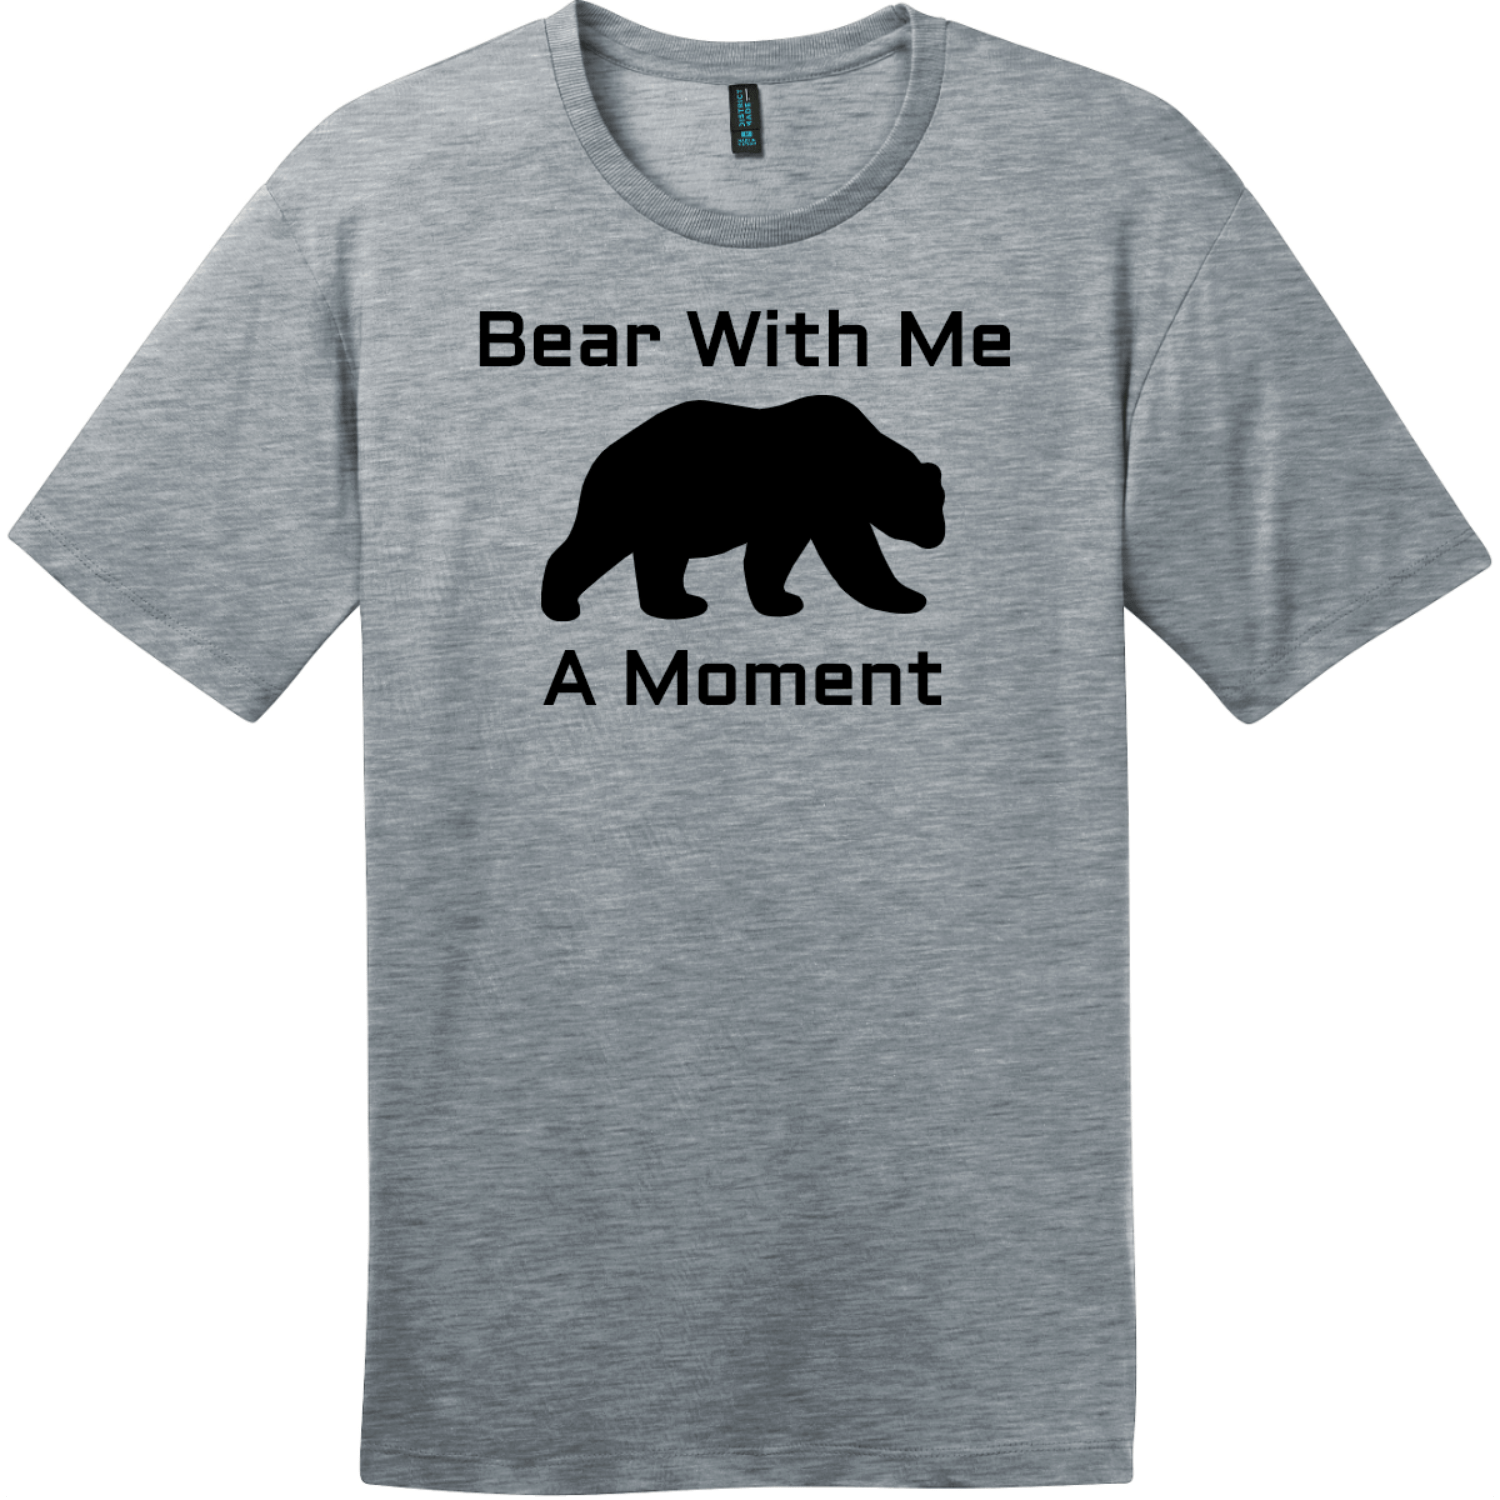 Bear With Me A Moment T-Shirt Heathered Steel District Perfect Weight Tee DT104